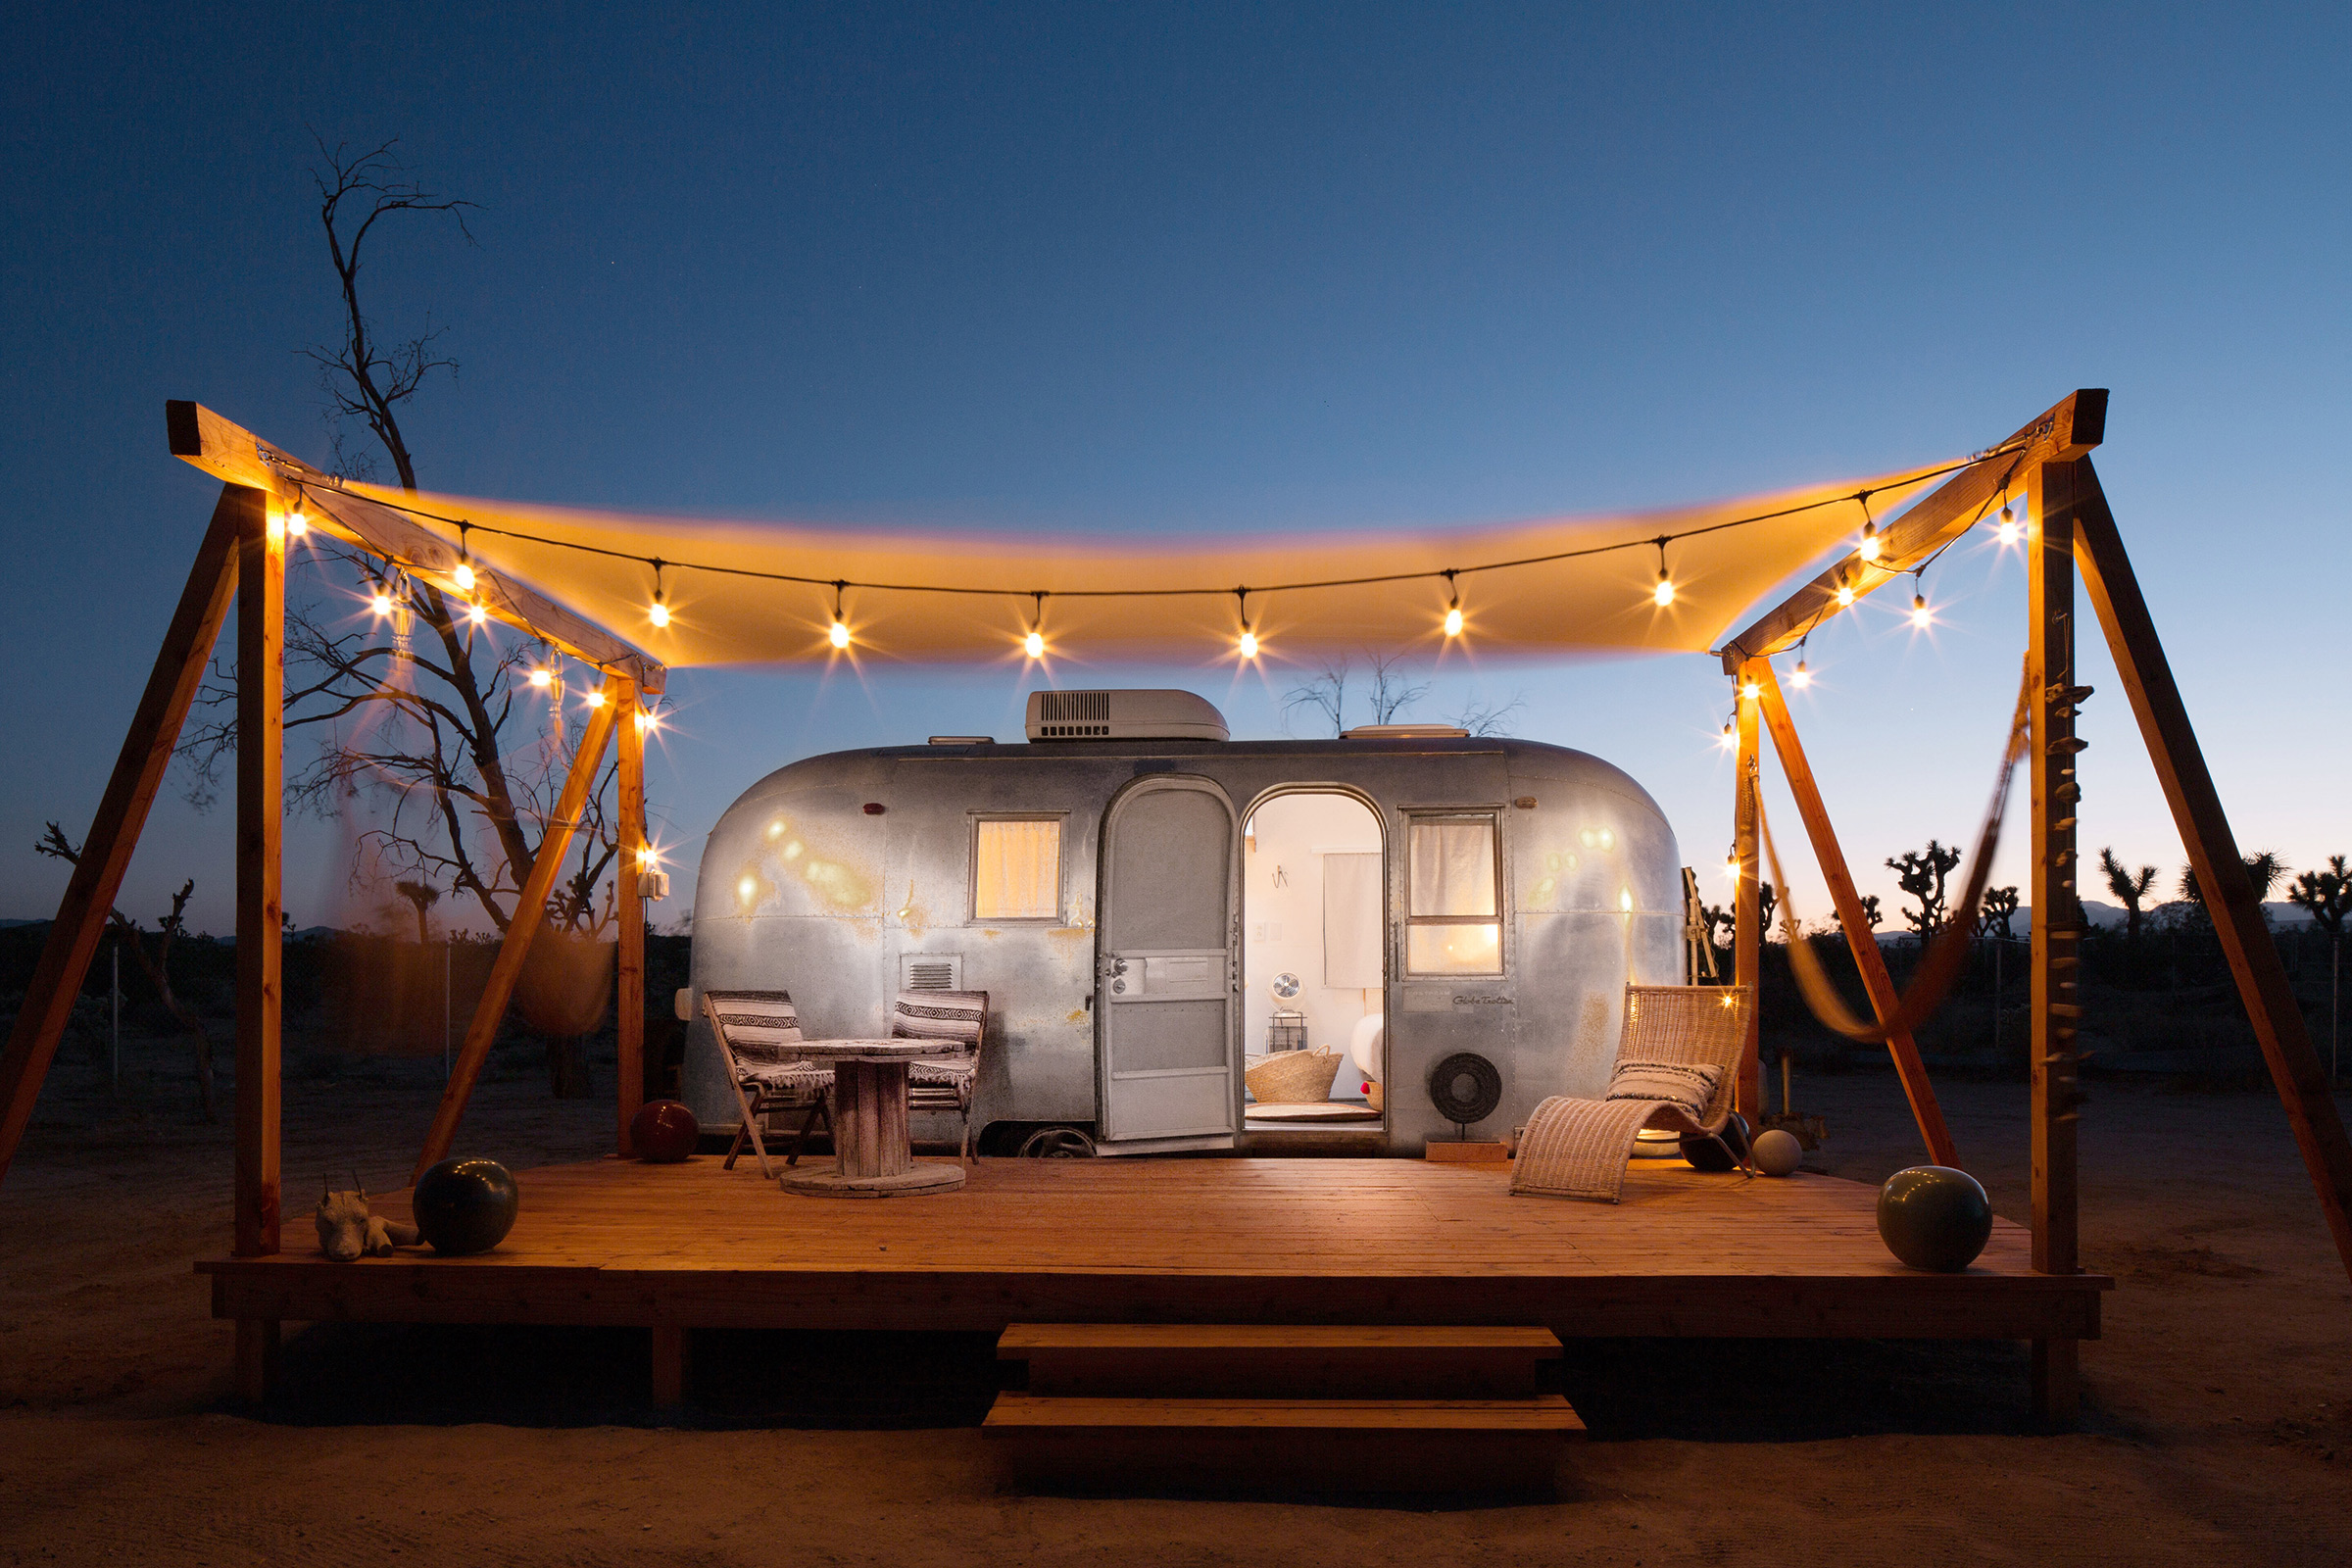 A home available on Airbnb in Joshua Tree, Calif.